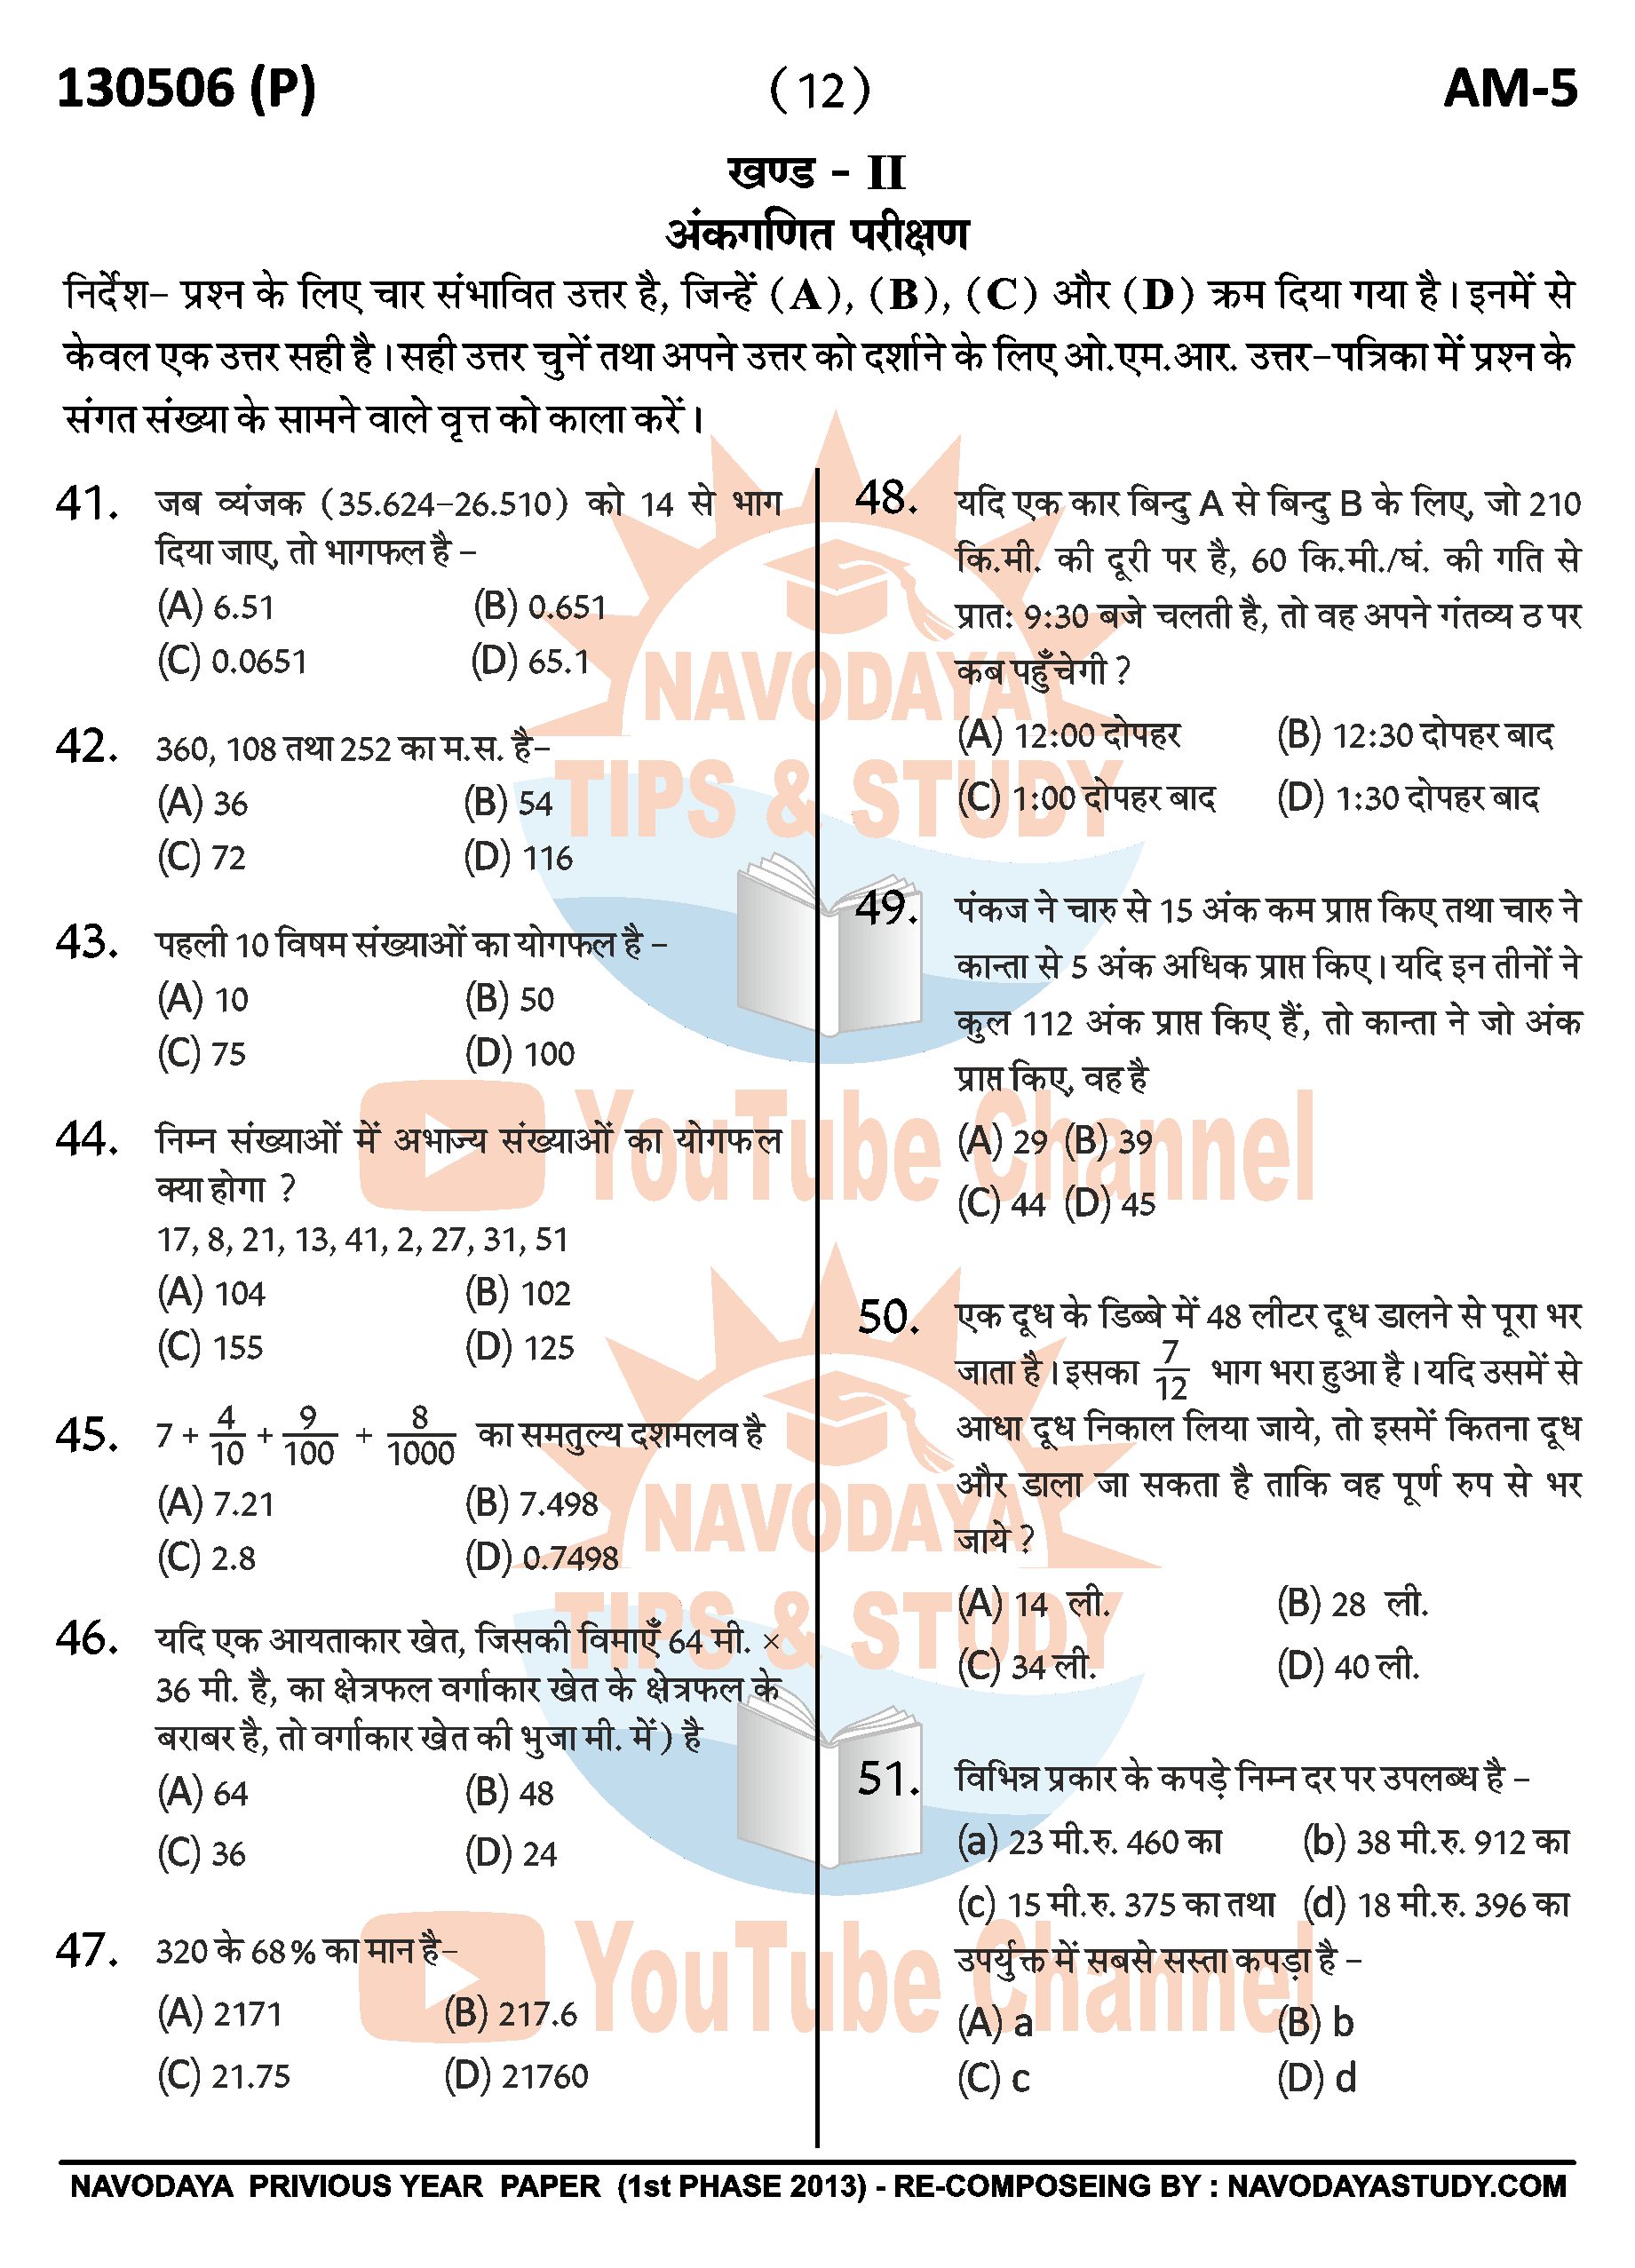 NAVODAYA 2013 AM - 5 HIND OLD YEAR QUESTION PAPER PAGE NO. 12